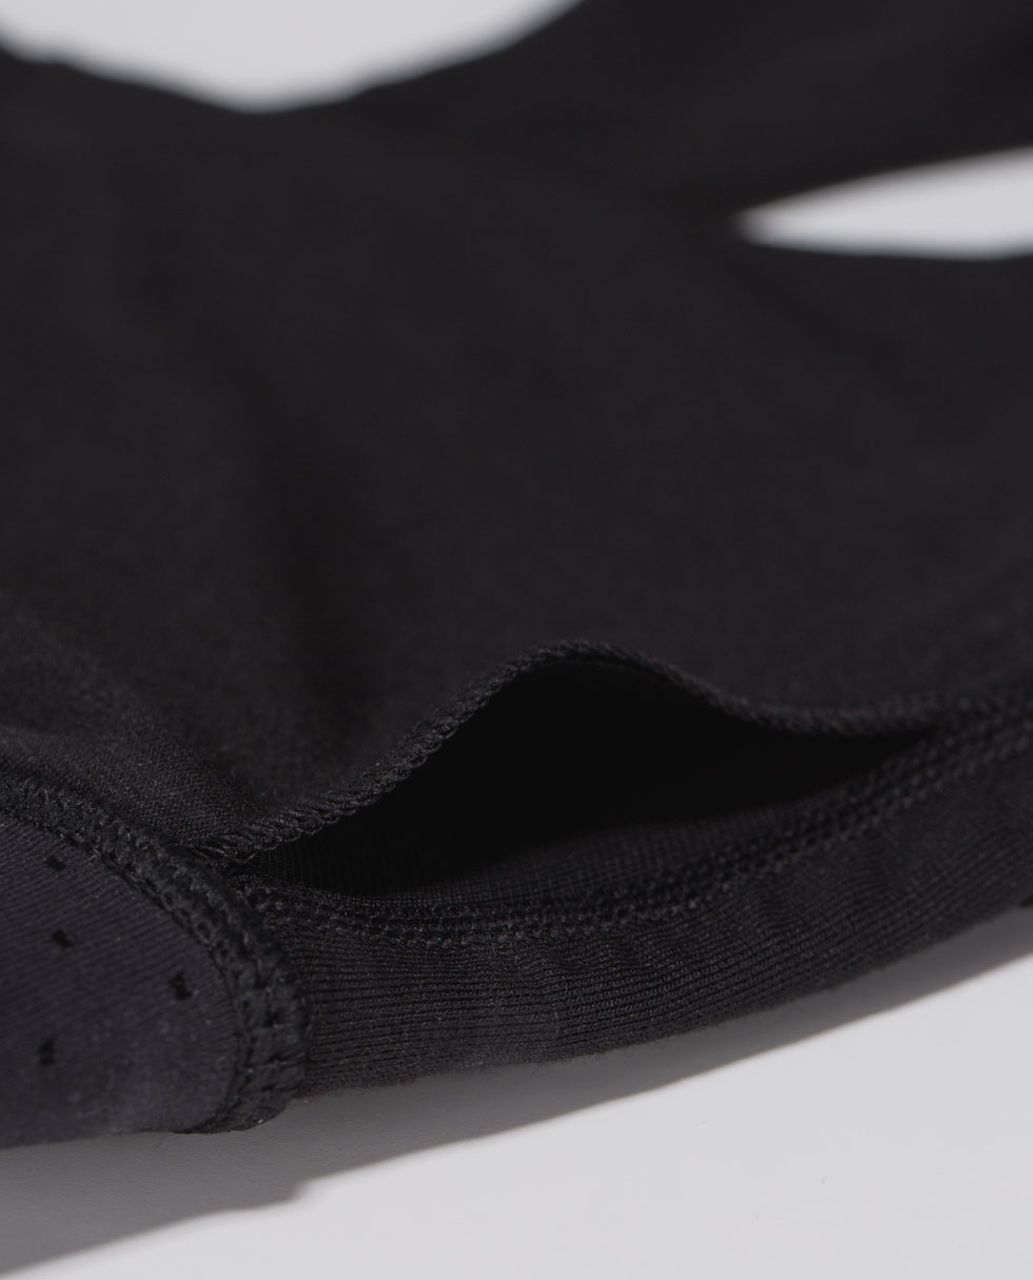 Lululemon 50 Rep Bra - Shine Dot Black